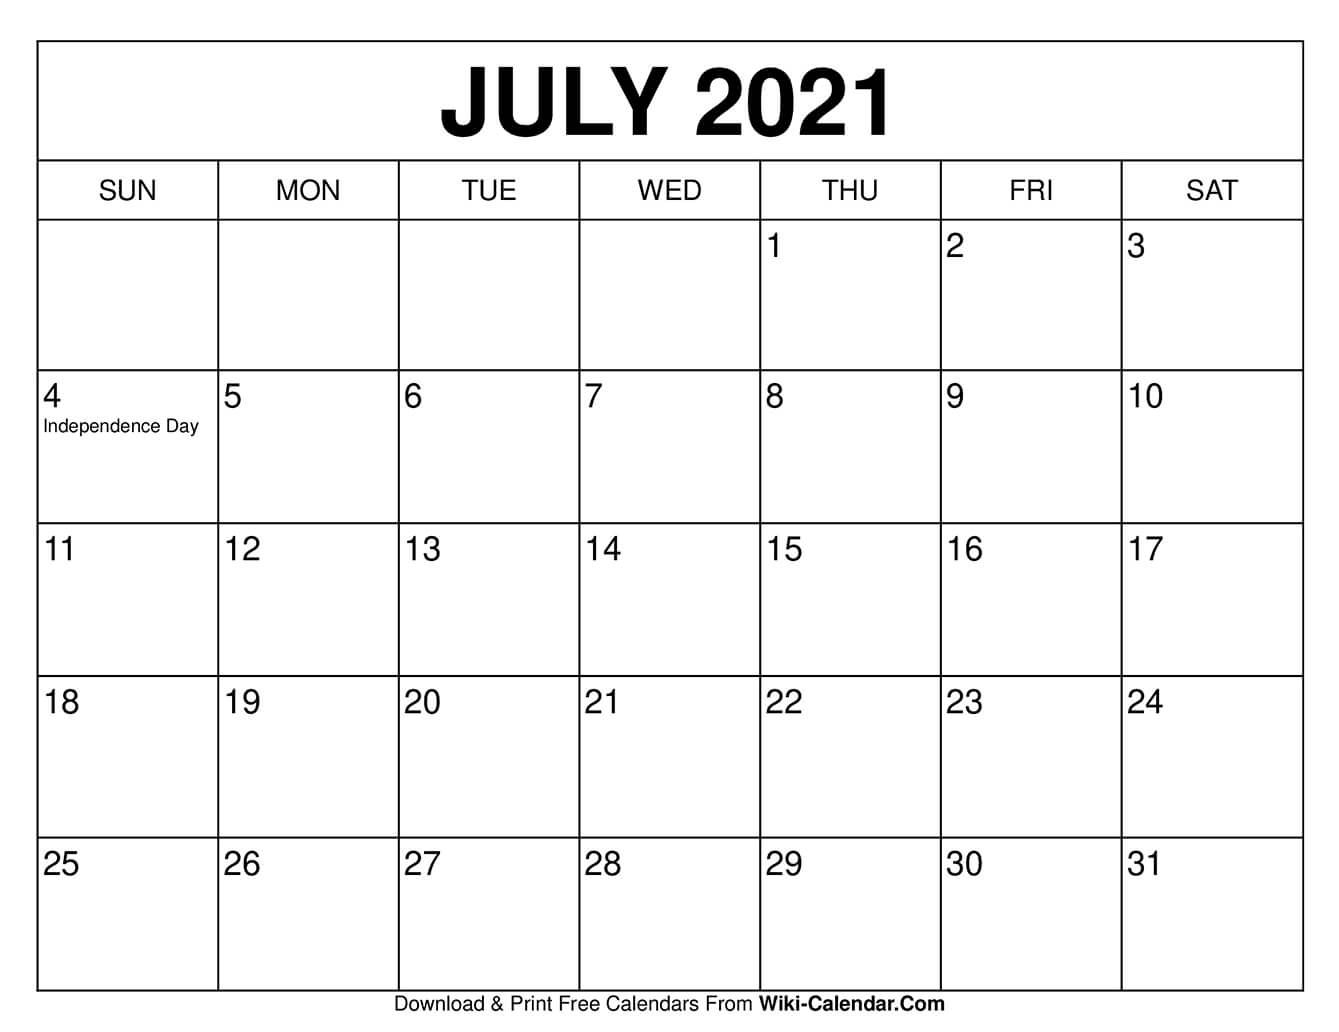 Catch Calendar For June And July 2021